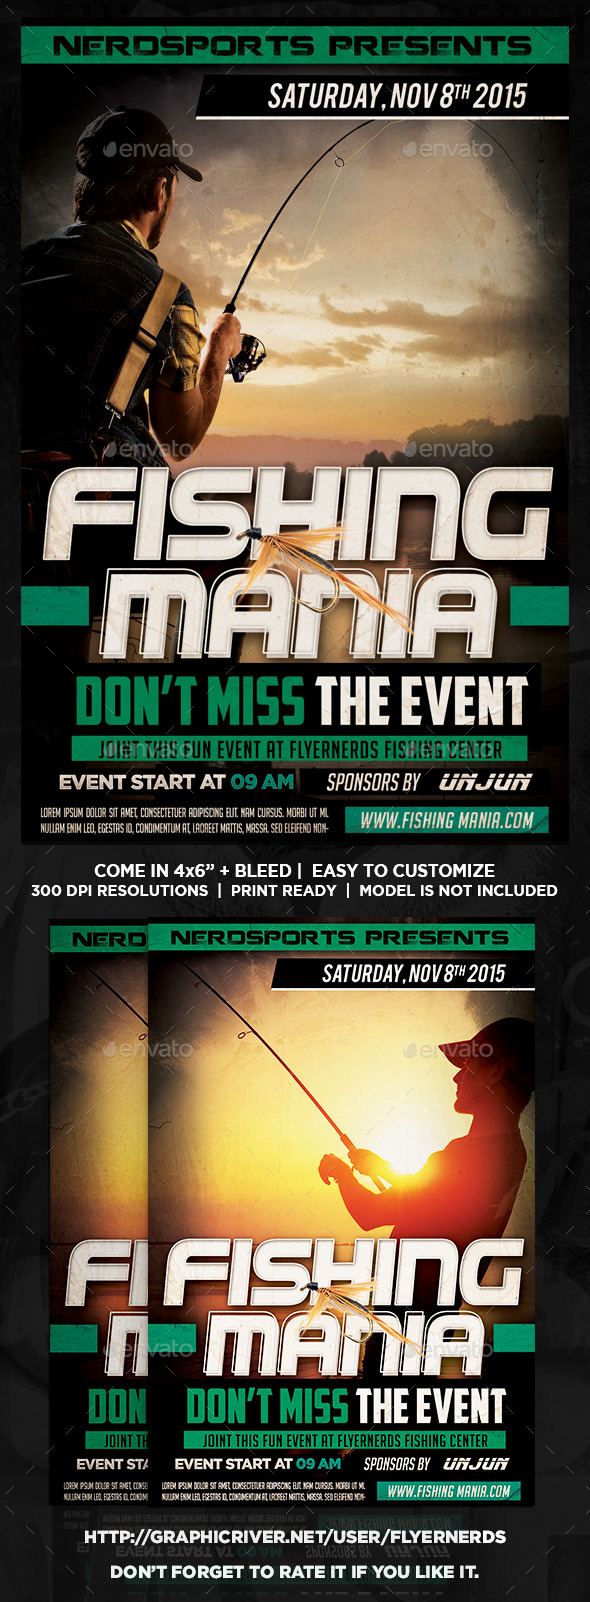 Fishing Manis Sports Flyer - Sports Events